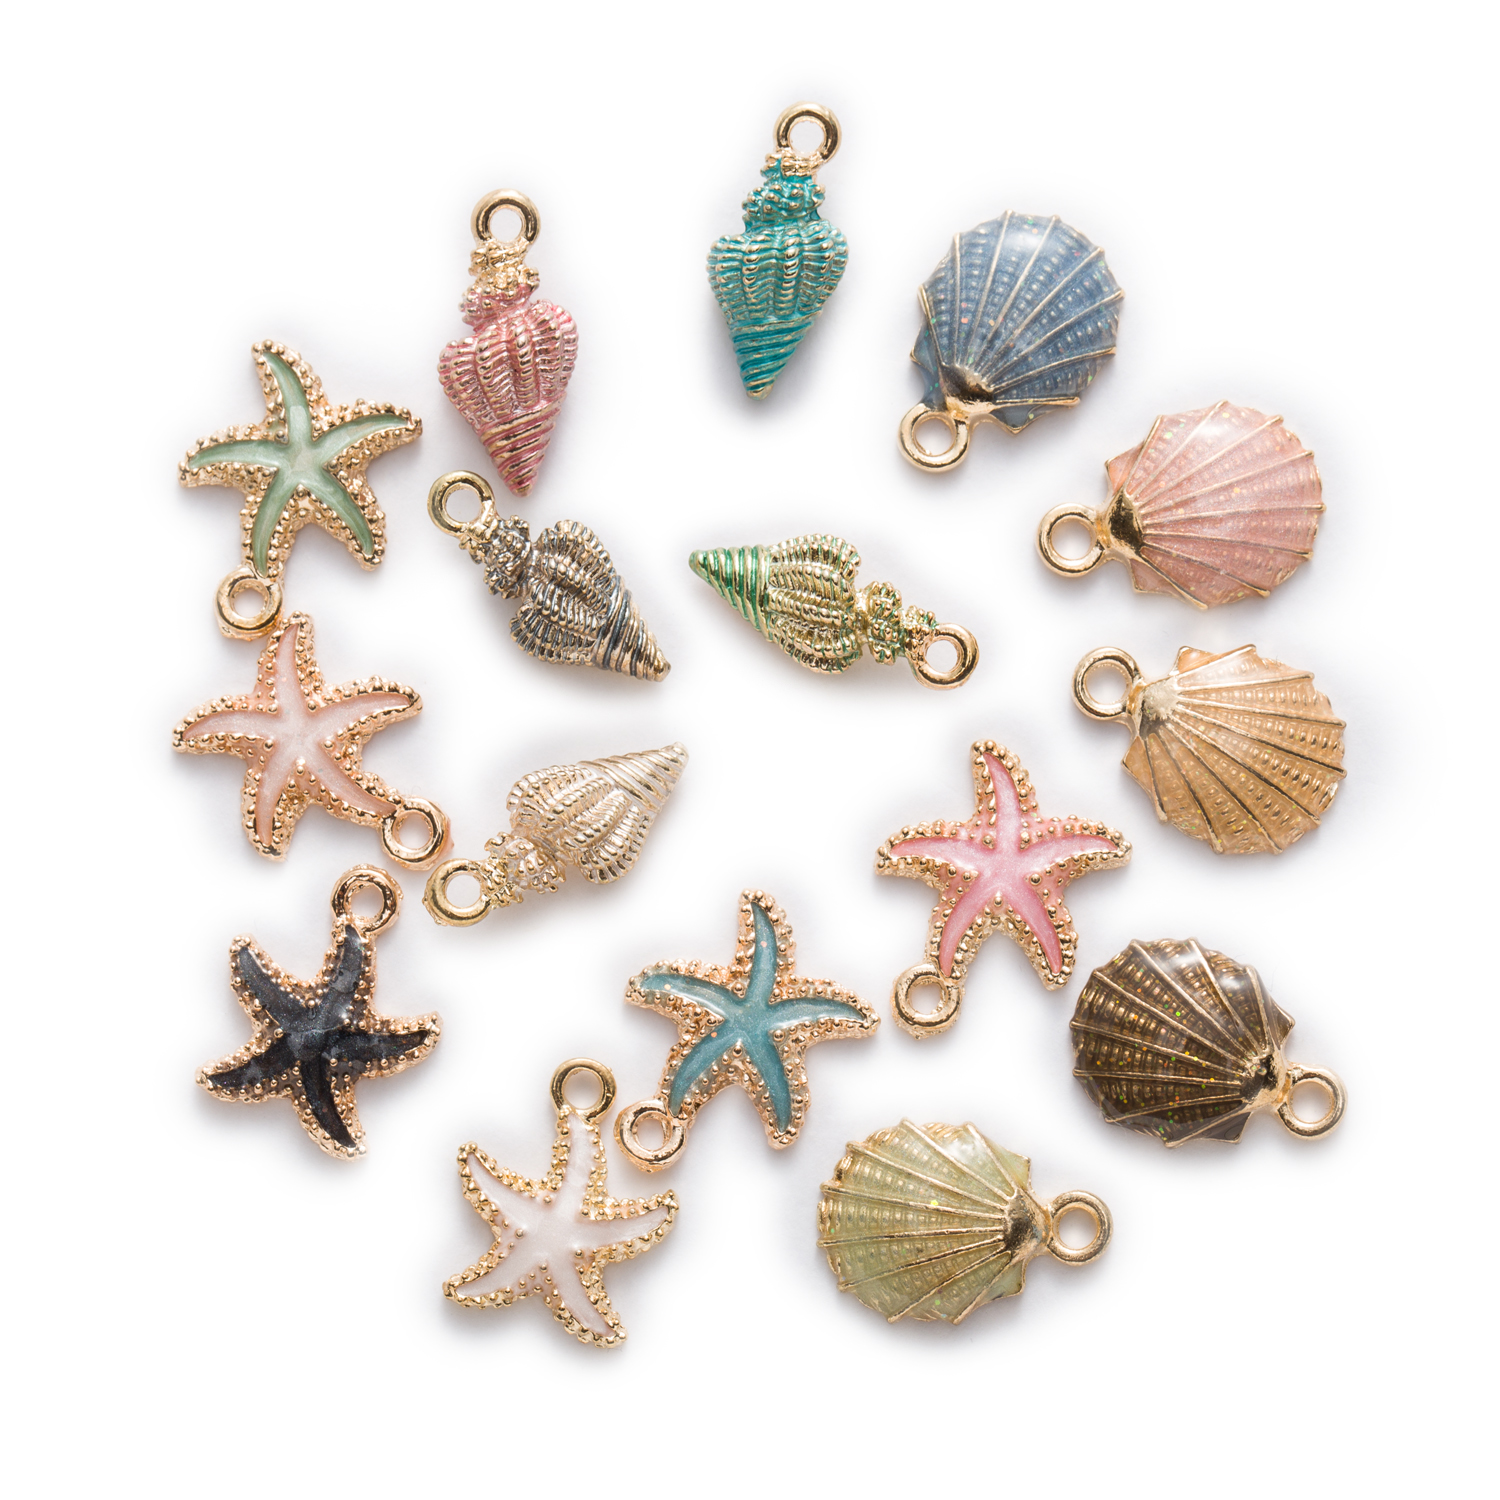 8x Silver Conch Seashell Charms Pendants for Necklace Jewelry Making Crafts